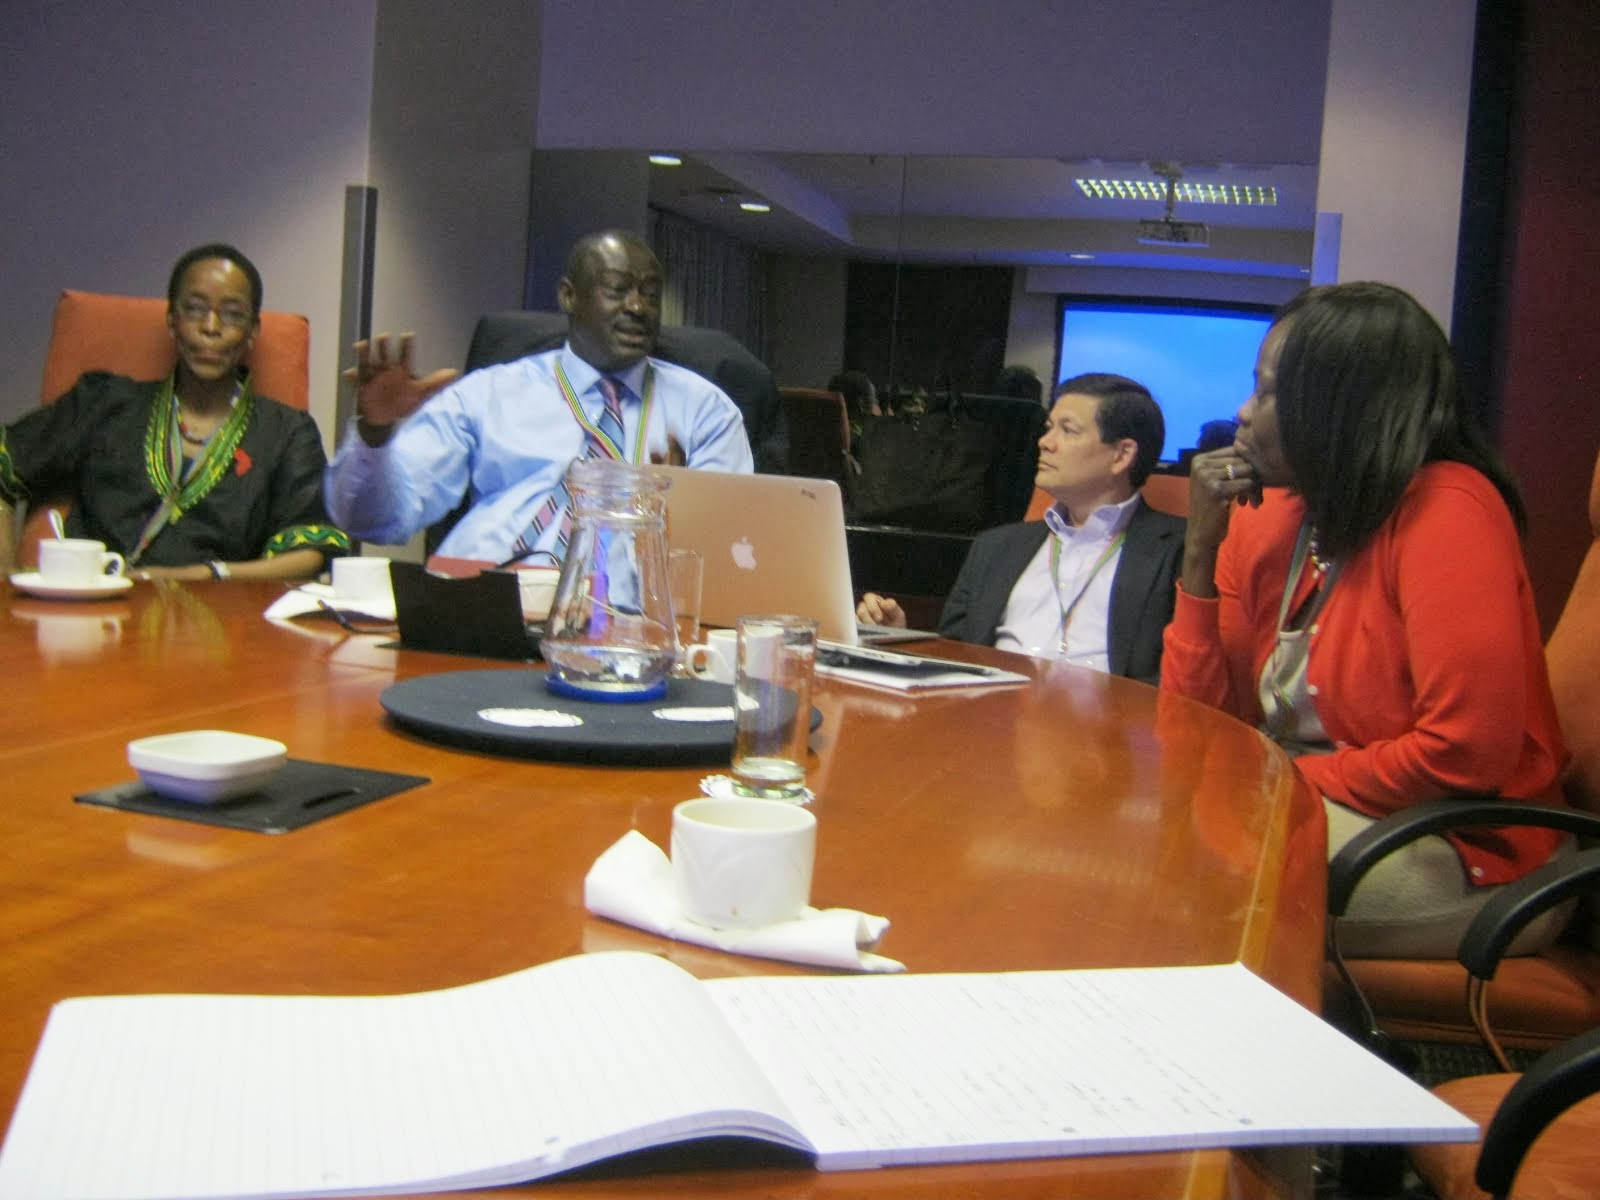 ACLI Meeting in Durban/South Africa